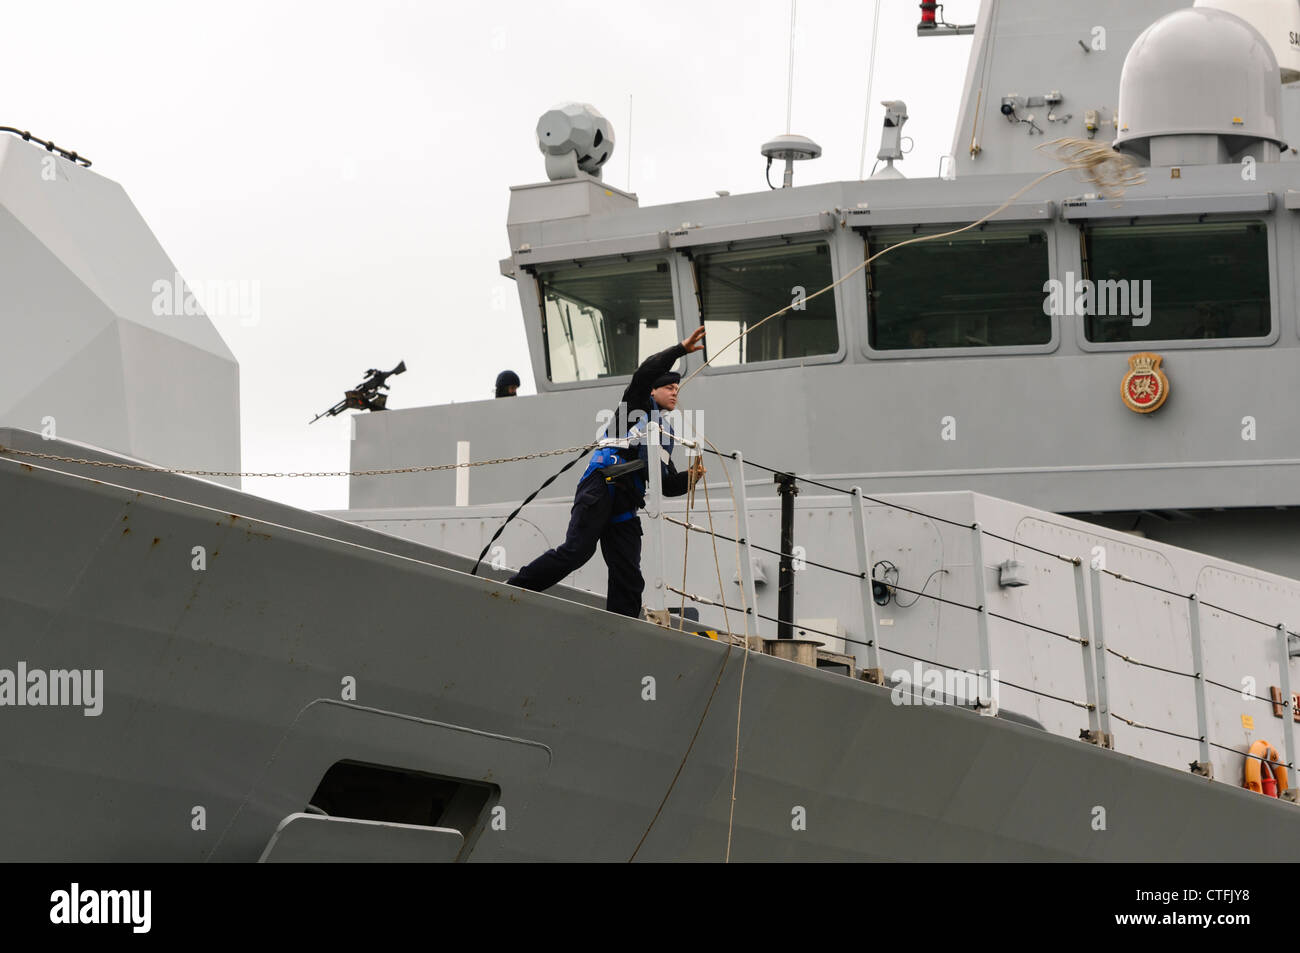 Sailor on Royal Navy Type 45 destroyer HMS Dragon throws a lead rope to dockers Stock Photo